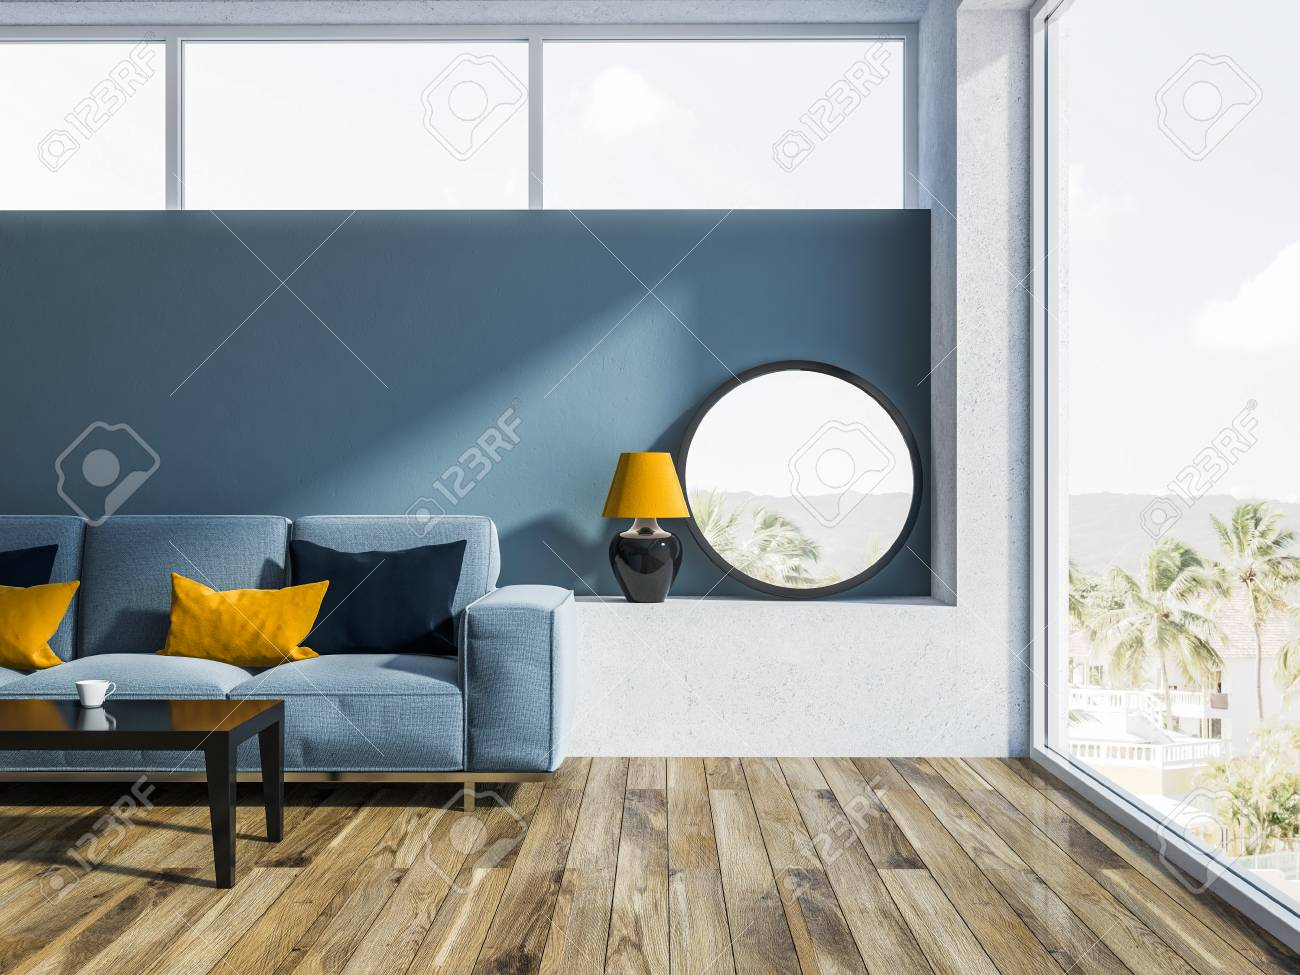 Modern Living Room Interior With Blue Walls A Wooden Floor And